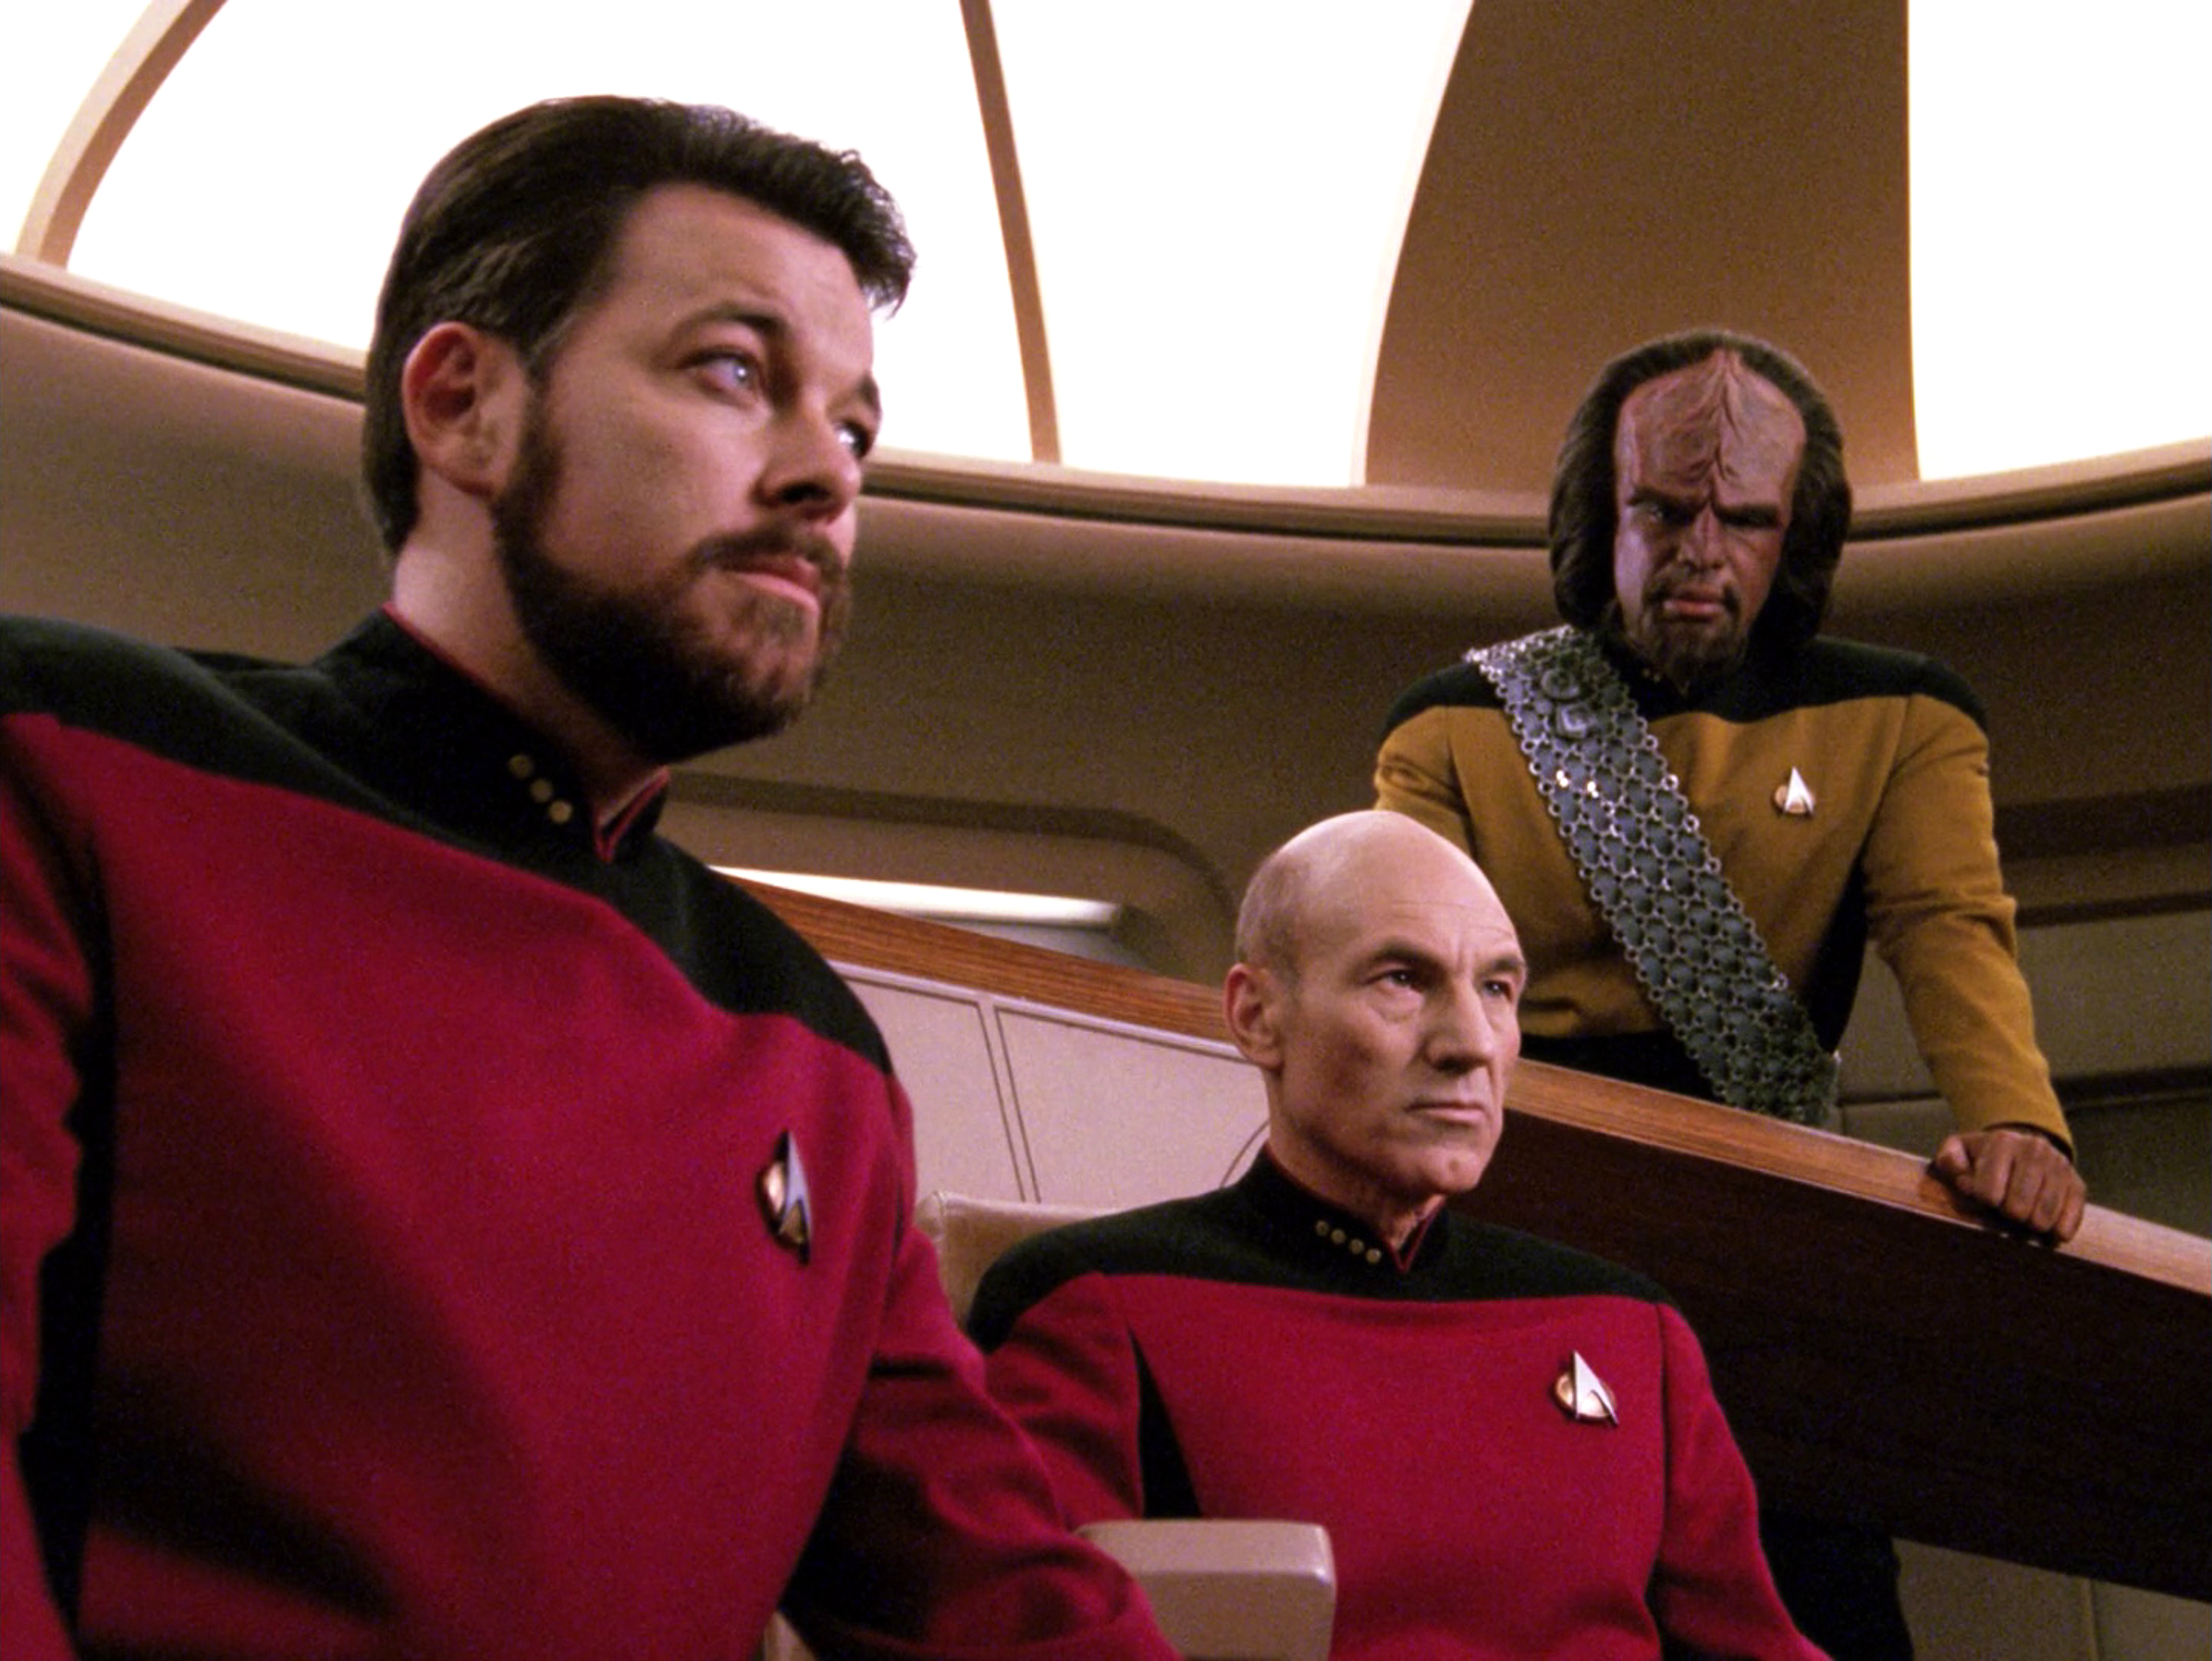 From warp drives to holodecks: 7 Star Trek technologies scientists are working on